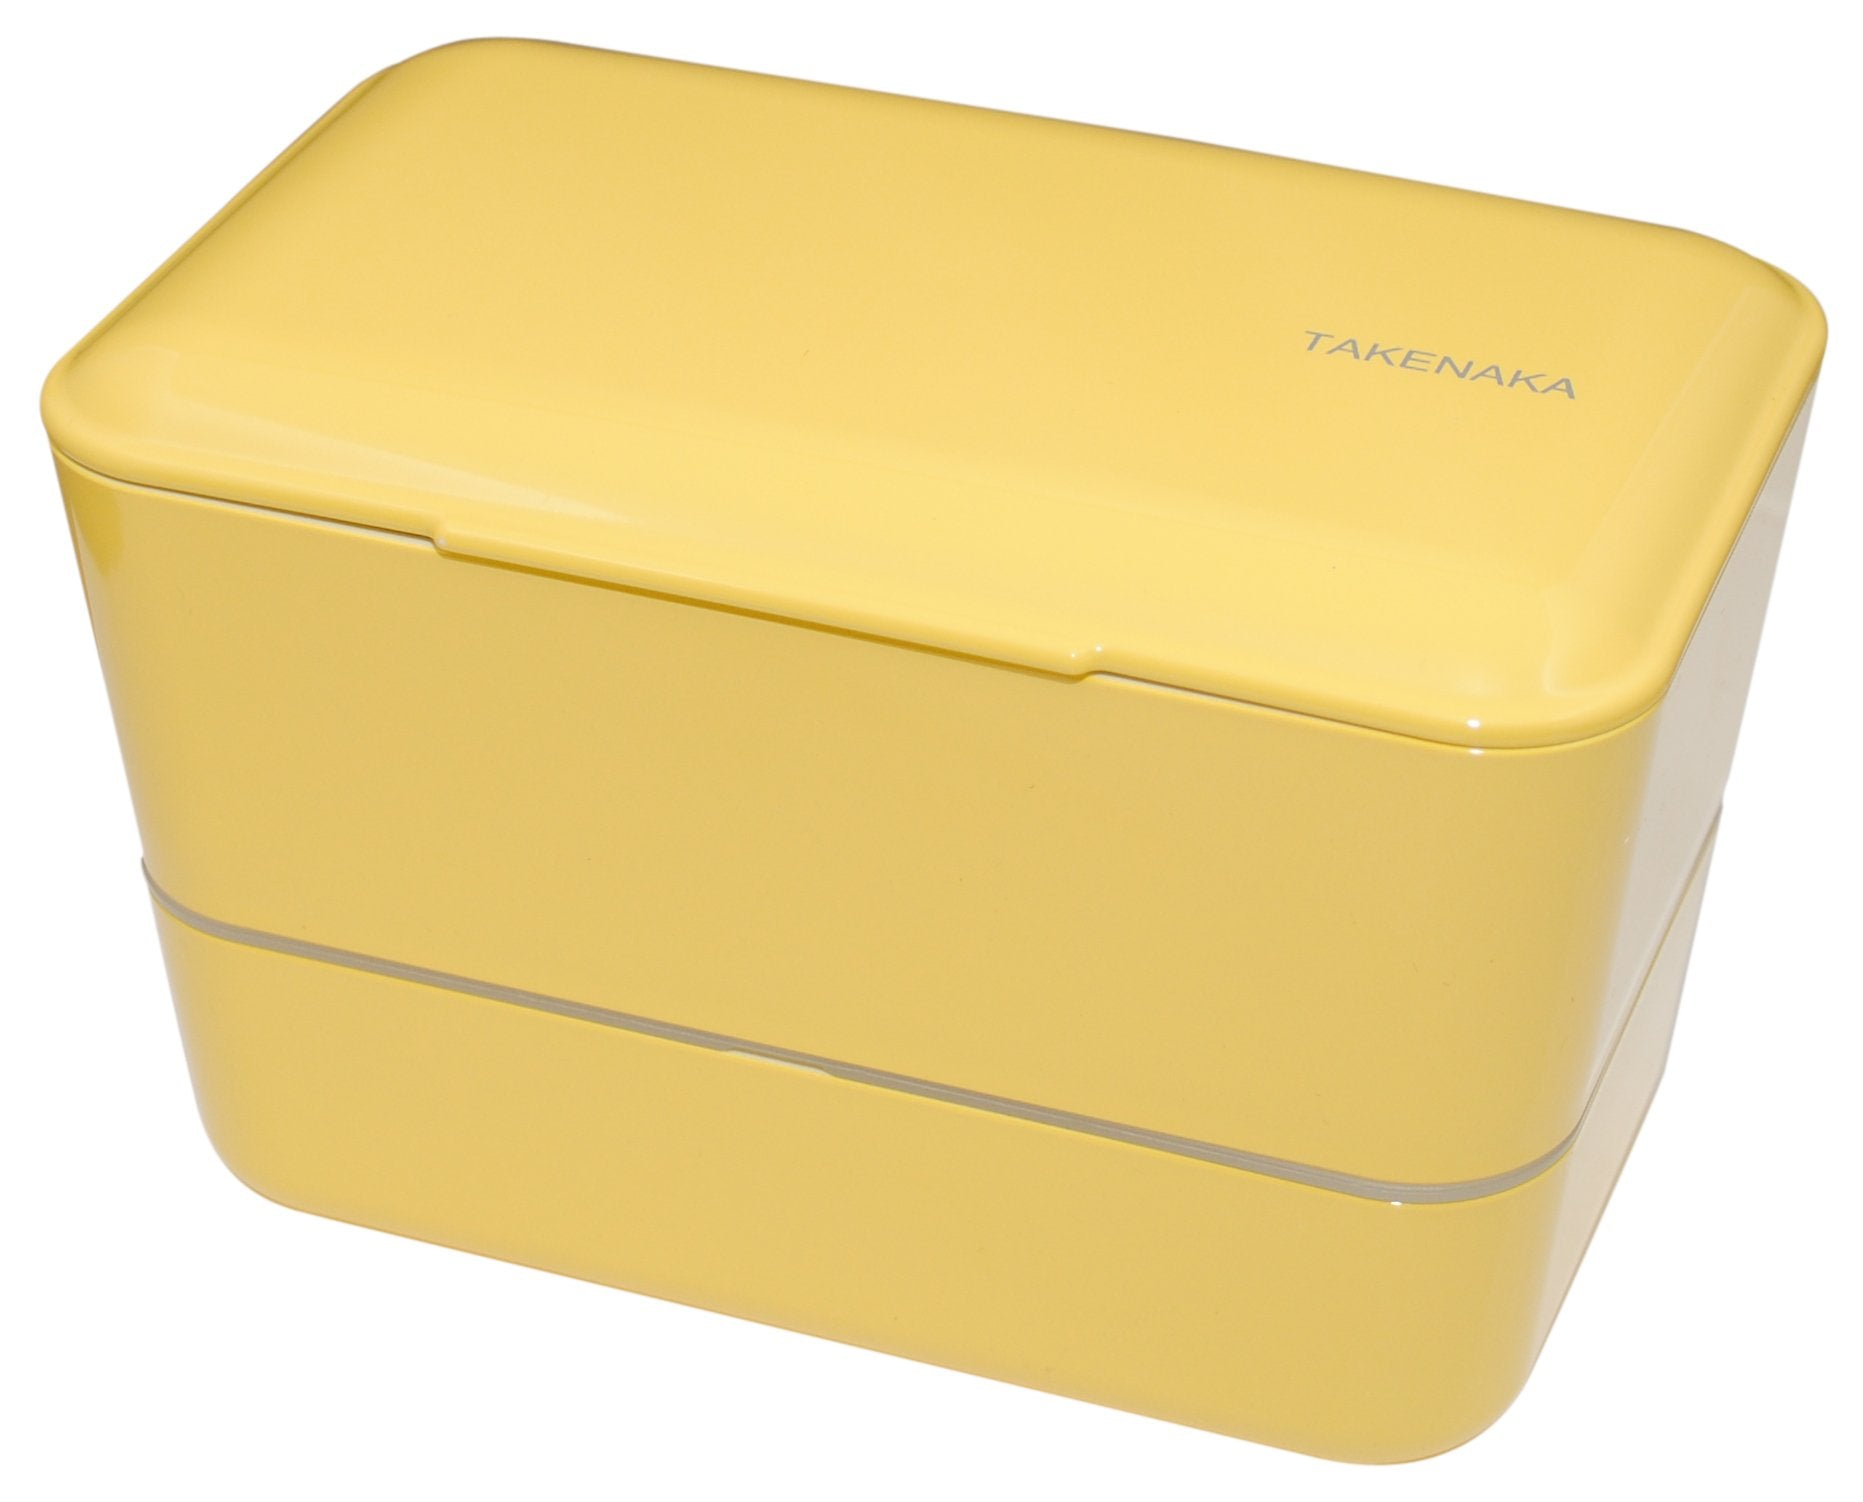 Expanded Double Bento Box | Lemon Zest by Takenaka - Bento&co Japanese Bento Lunch Boxes and Kitchenware Specialists